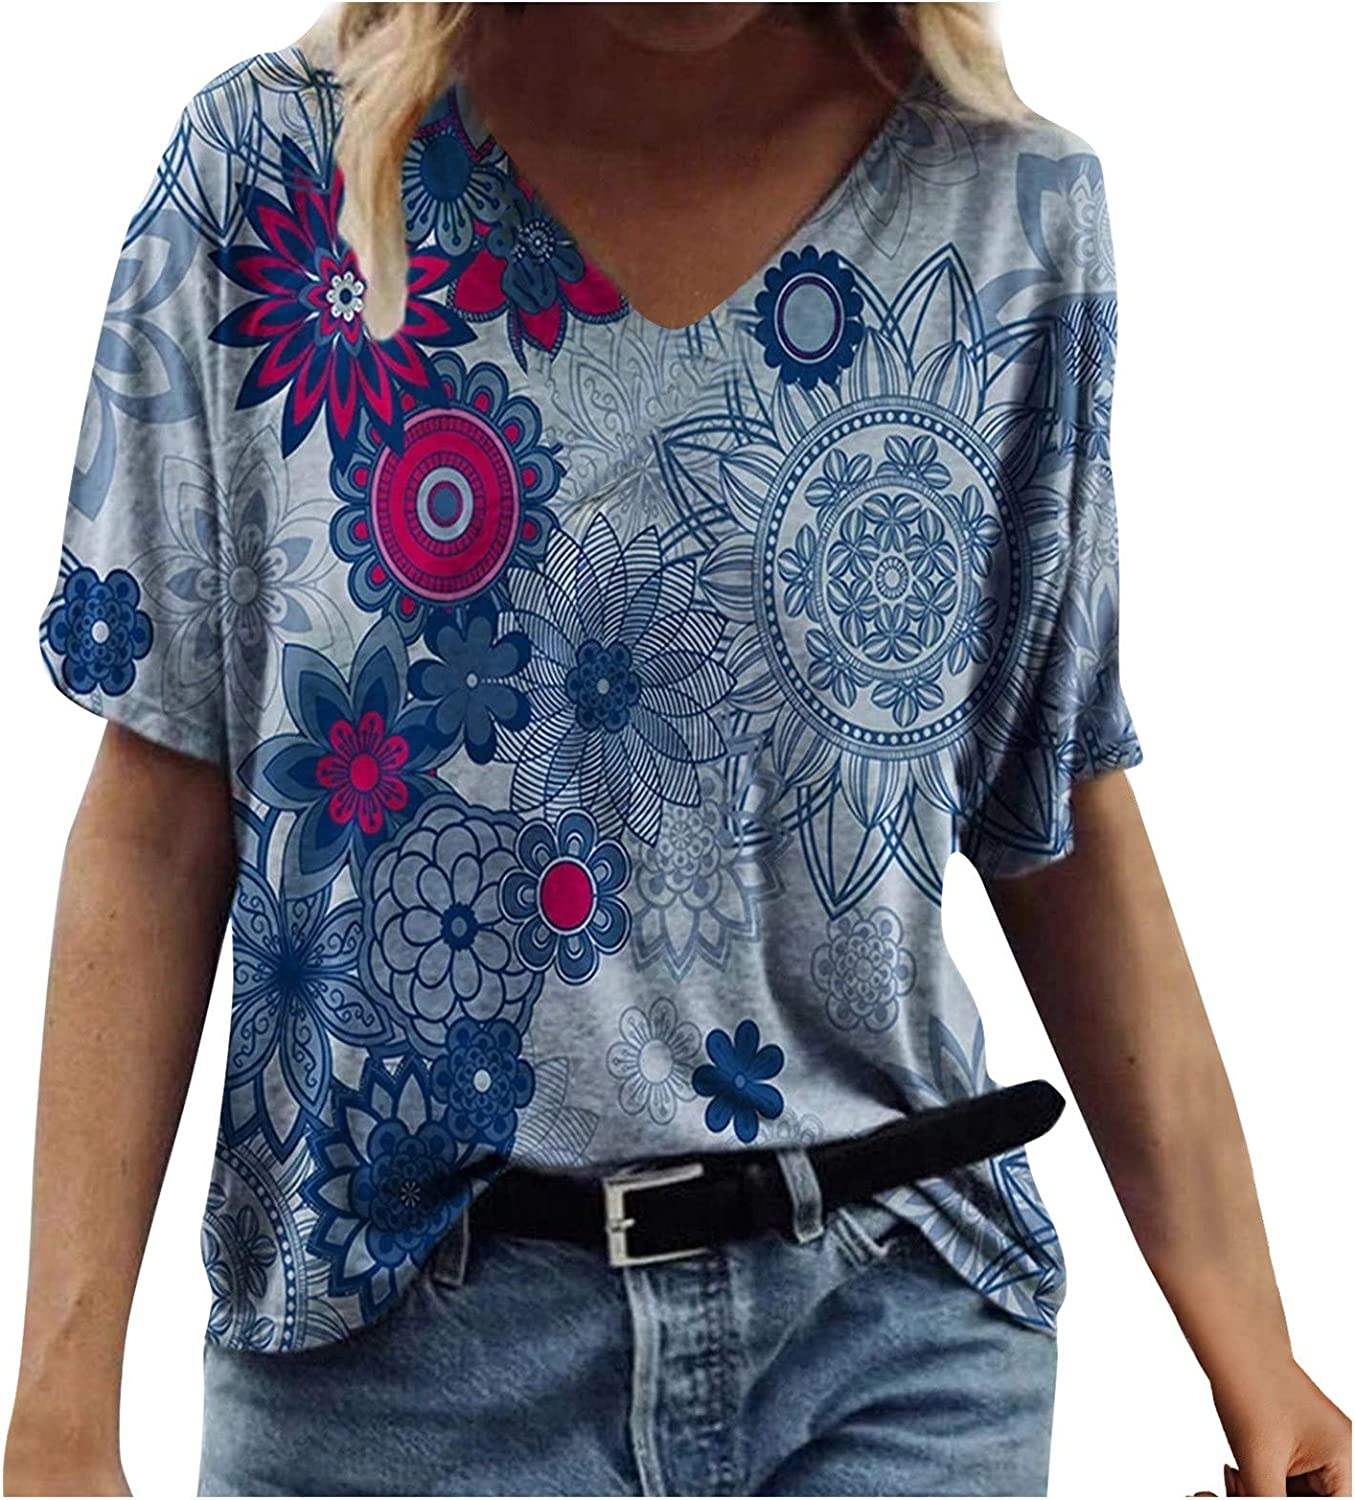 Tops for Women Casual Summer 3/4 Sleeve,Women's V Neck Summer Causal Short Sleeve Tops Loose Soft Floral Printed Tshirts Tunic Blouse Tops Tee Shirts Blue